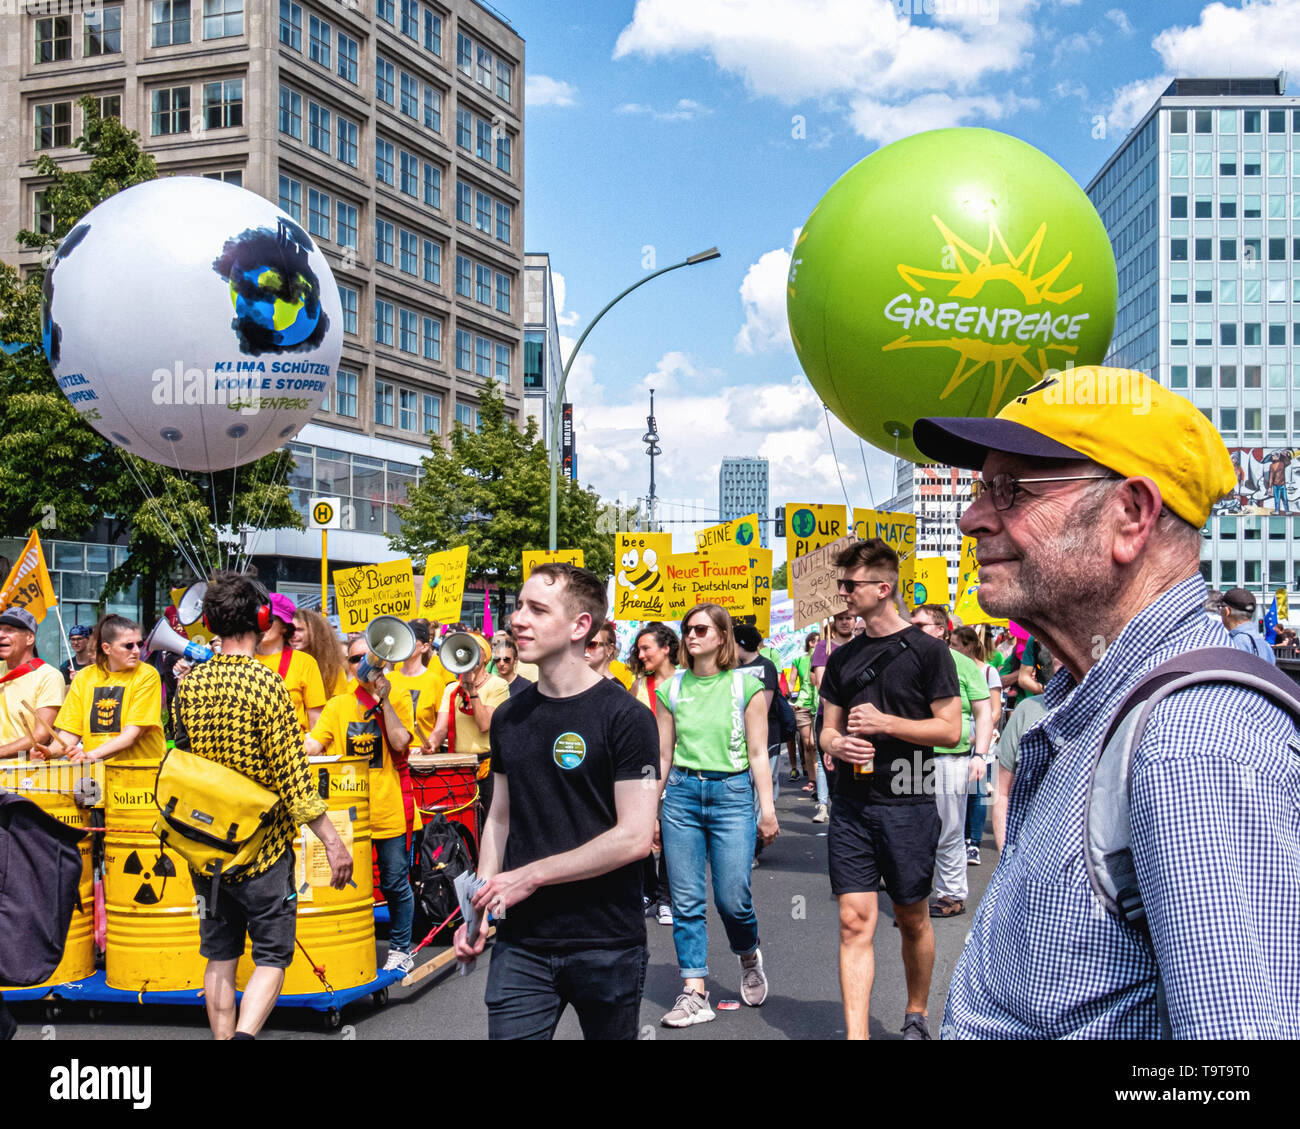 """Germany, Berlin, Mitte, 19th May 2019. """"One Europe for All' Demonstration - people gathered at Alexanderplatz as part of a Nationwide demonstration to promote solidarity in Europe in a run up to the upcoming European Elections. The Demo was organised by NGOs including Campact, Pro Asyl, Attac, Mehr Demokratie and Naturfreunde, the Seebrücke movement & Paritätischer Wohlfahrtsverband to oppose the racism, hate and resentment against minorities that is stirred up by right-wing activists and policies. Credit: Eden Breitz/Alamy - Stock Image"""